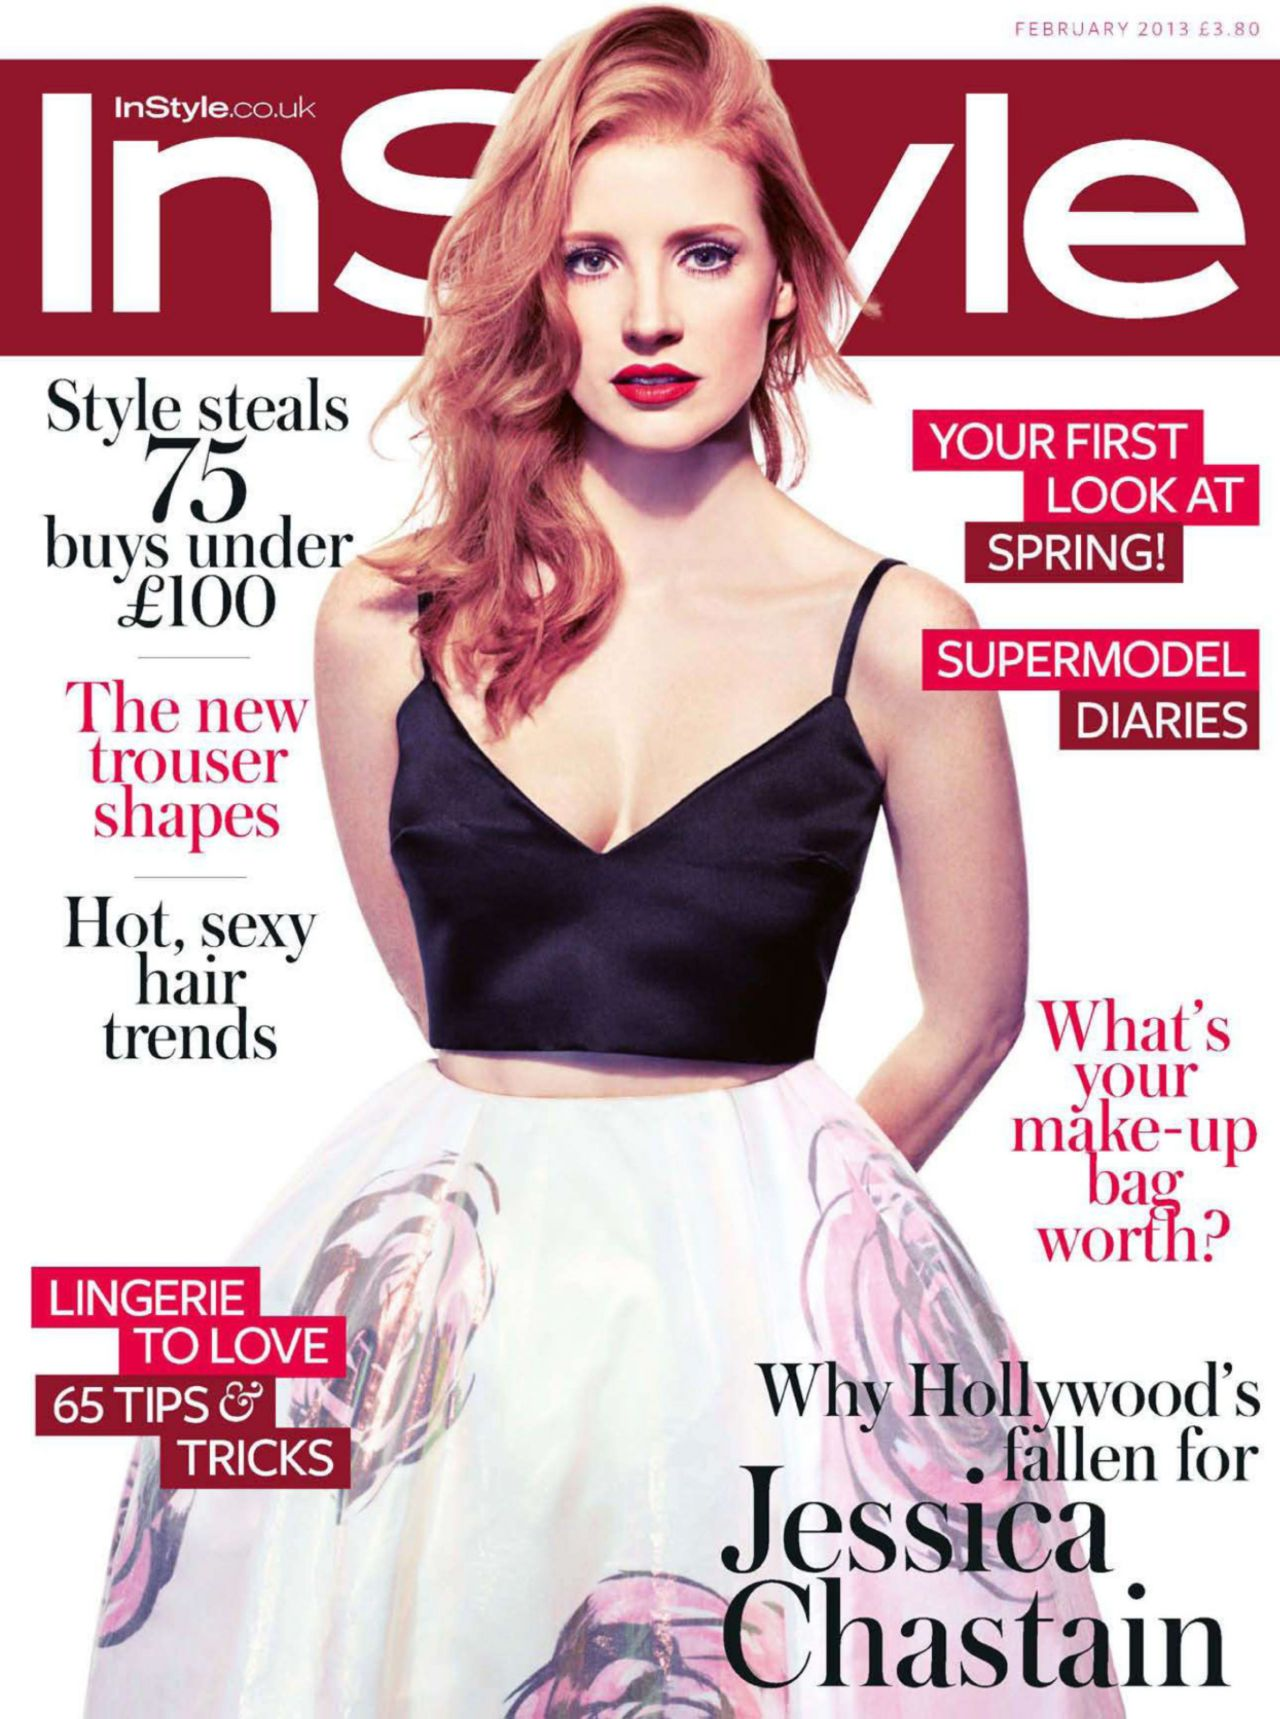 Instyle Magazine Us: InStyle UK February 2013 Issue